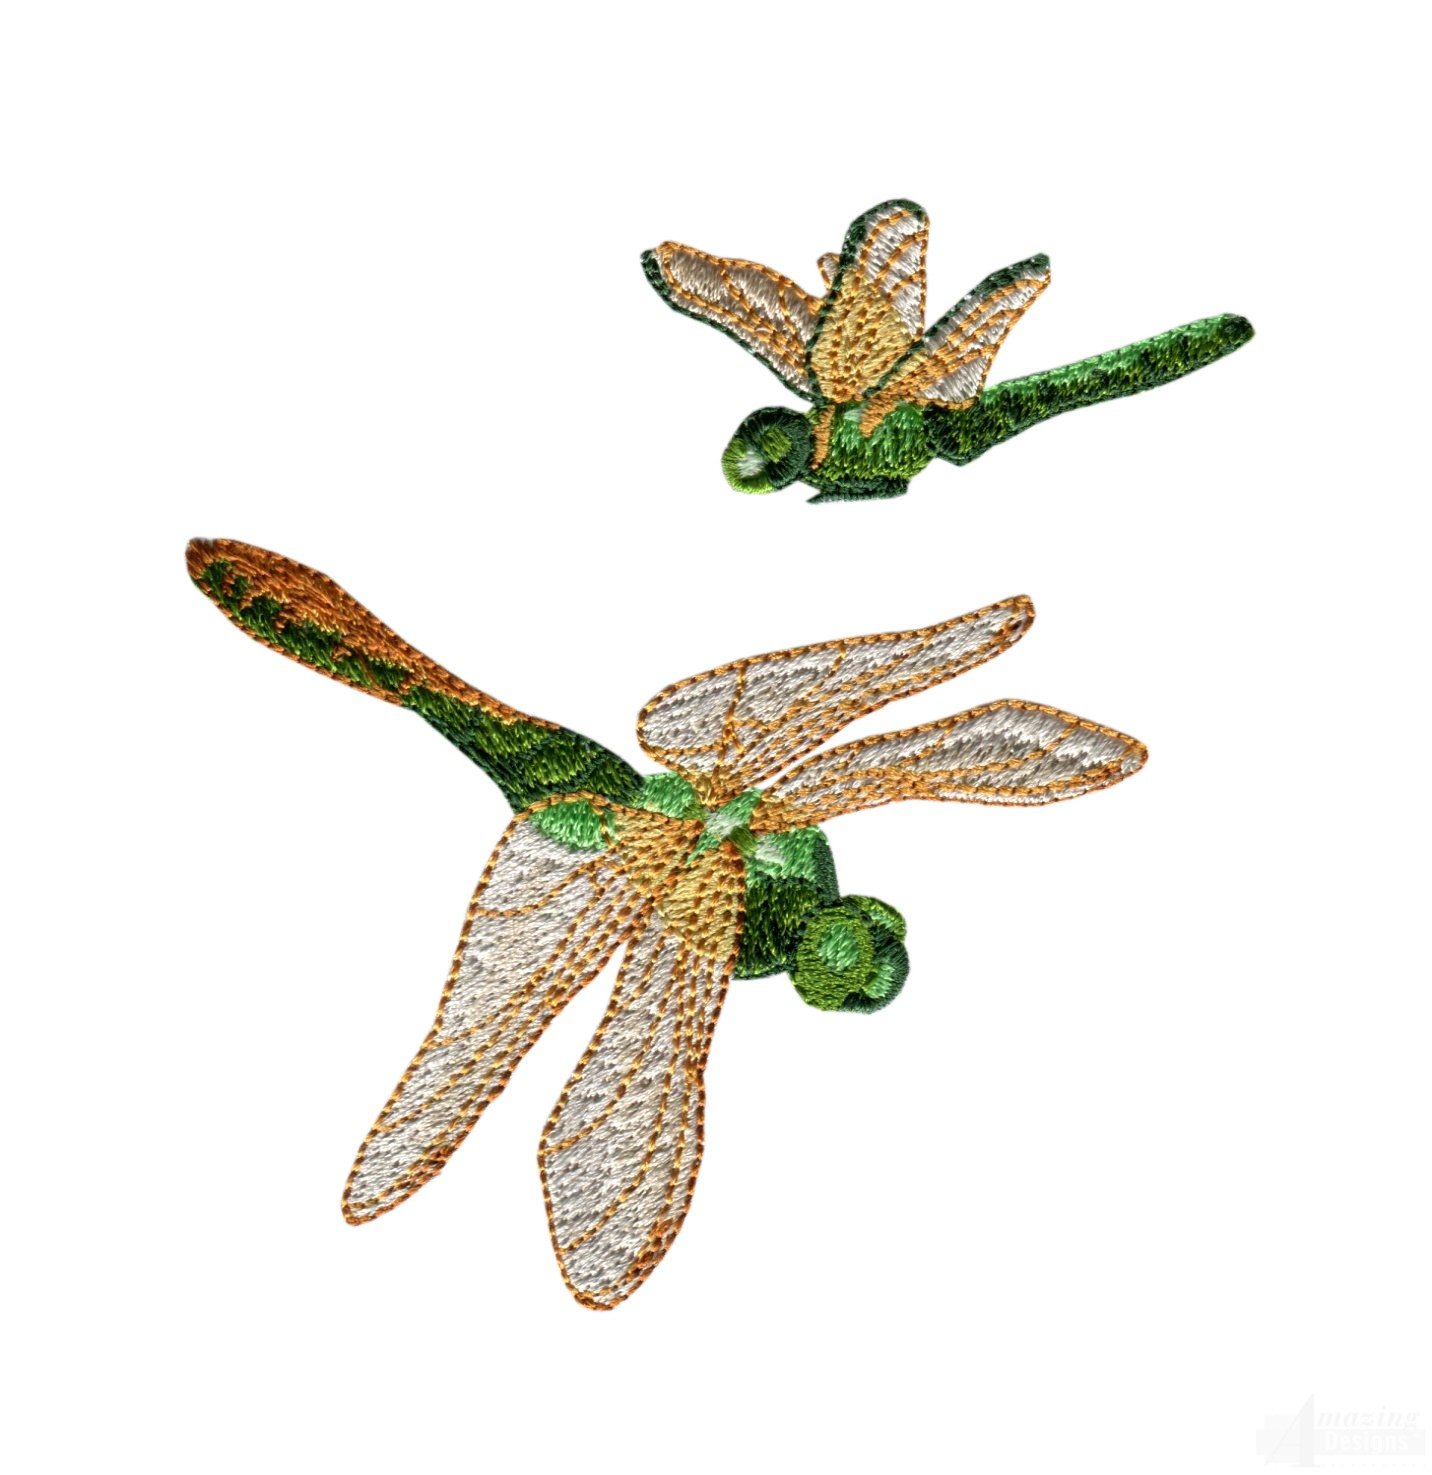 Dragonfly Applique Embroidery Designs